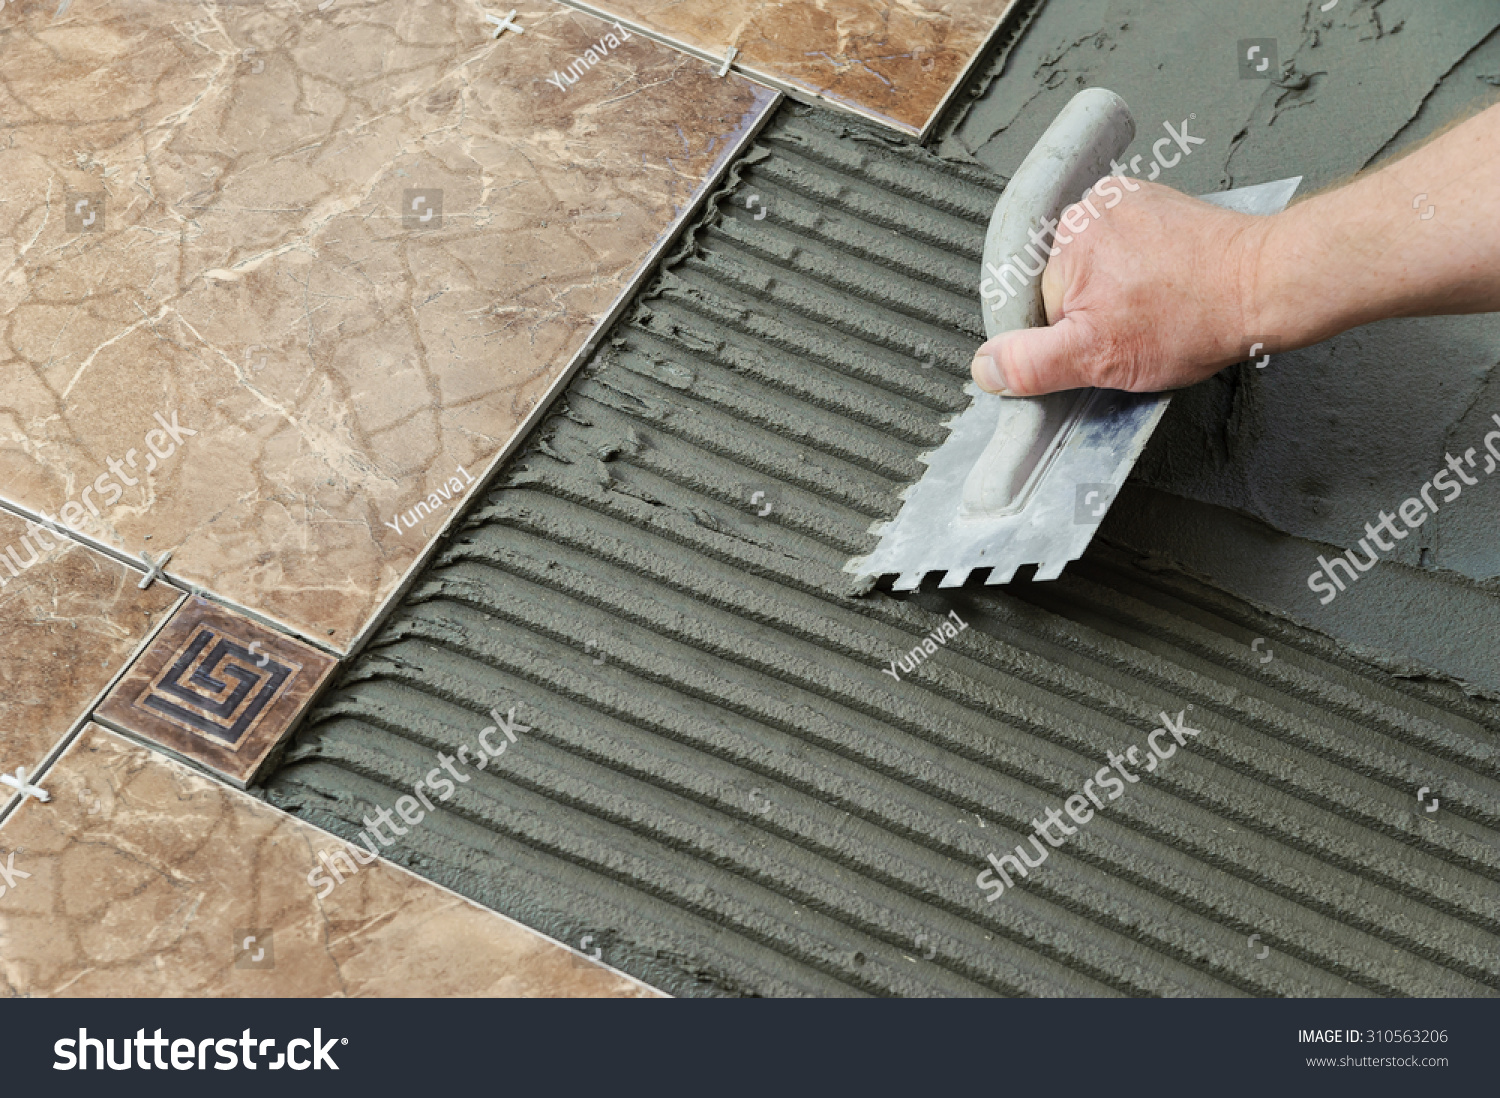 Laying ceramic tiles troweling adhesive onto stock photo 310563206 laying ceramic tiles troweling adhesive onto a concrete floor in preparation for laying white floor dailygadgetfo Choice Image